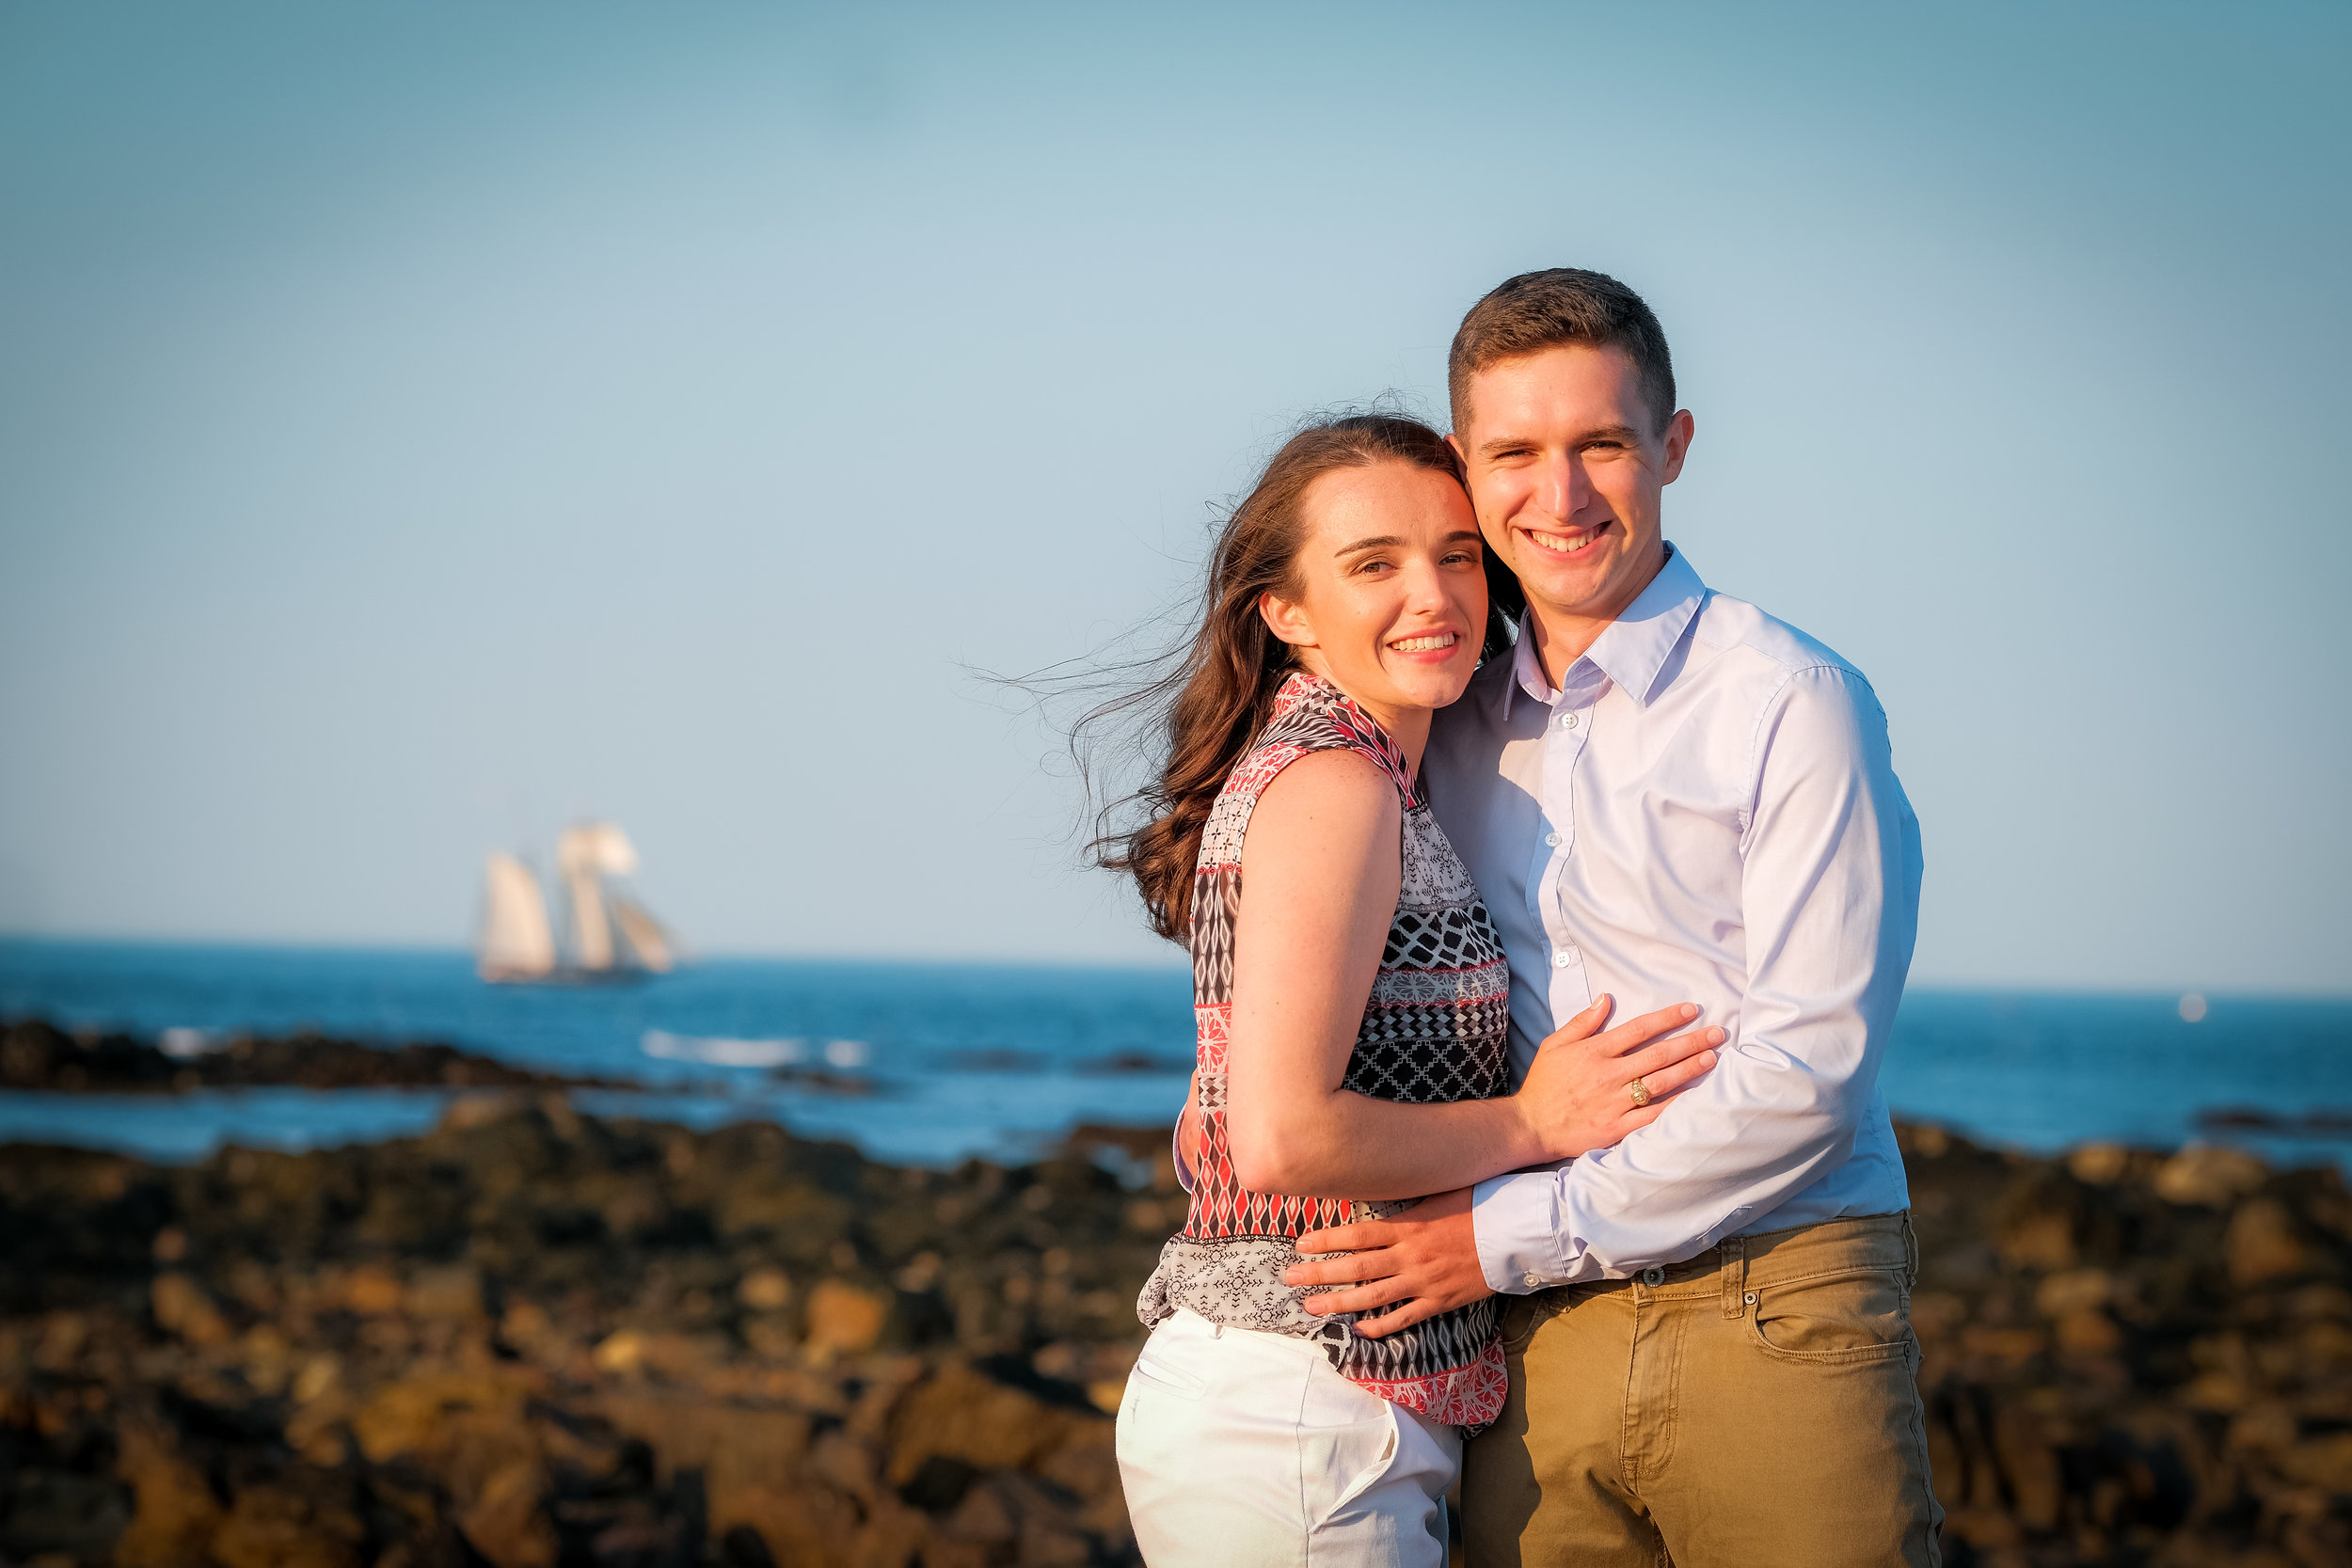 Periwinkle-Cove-Engagement-Photography-140.jpg